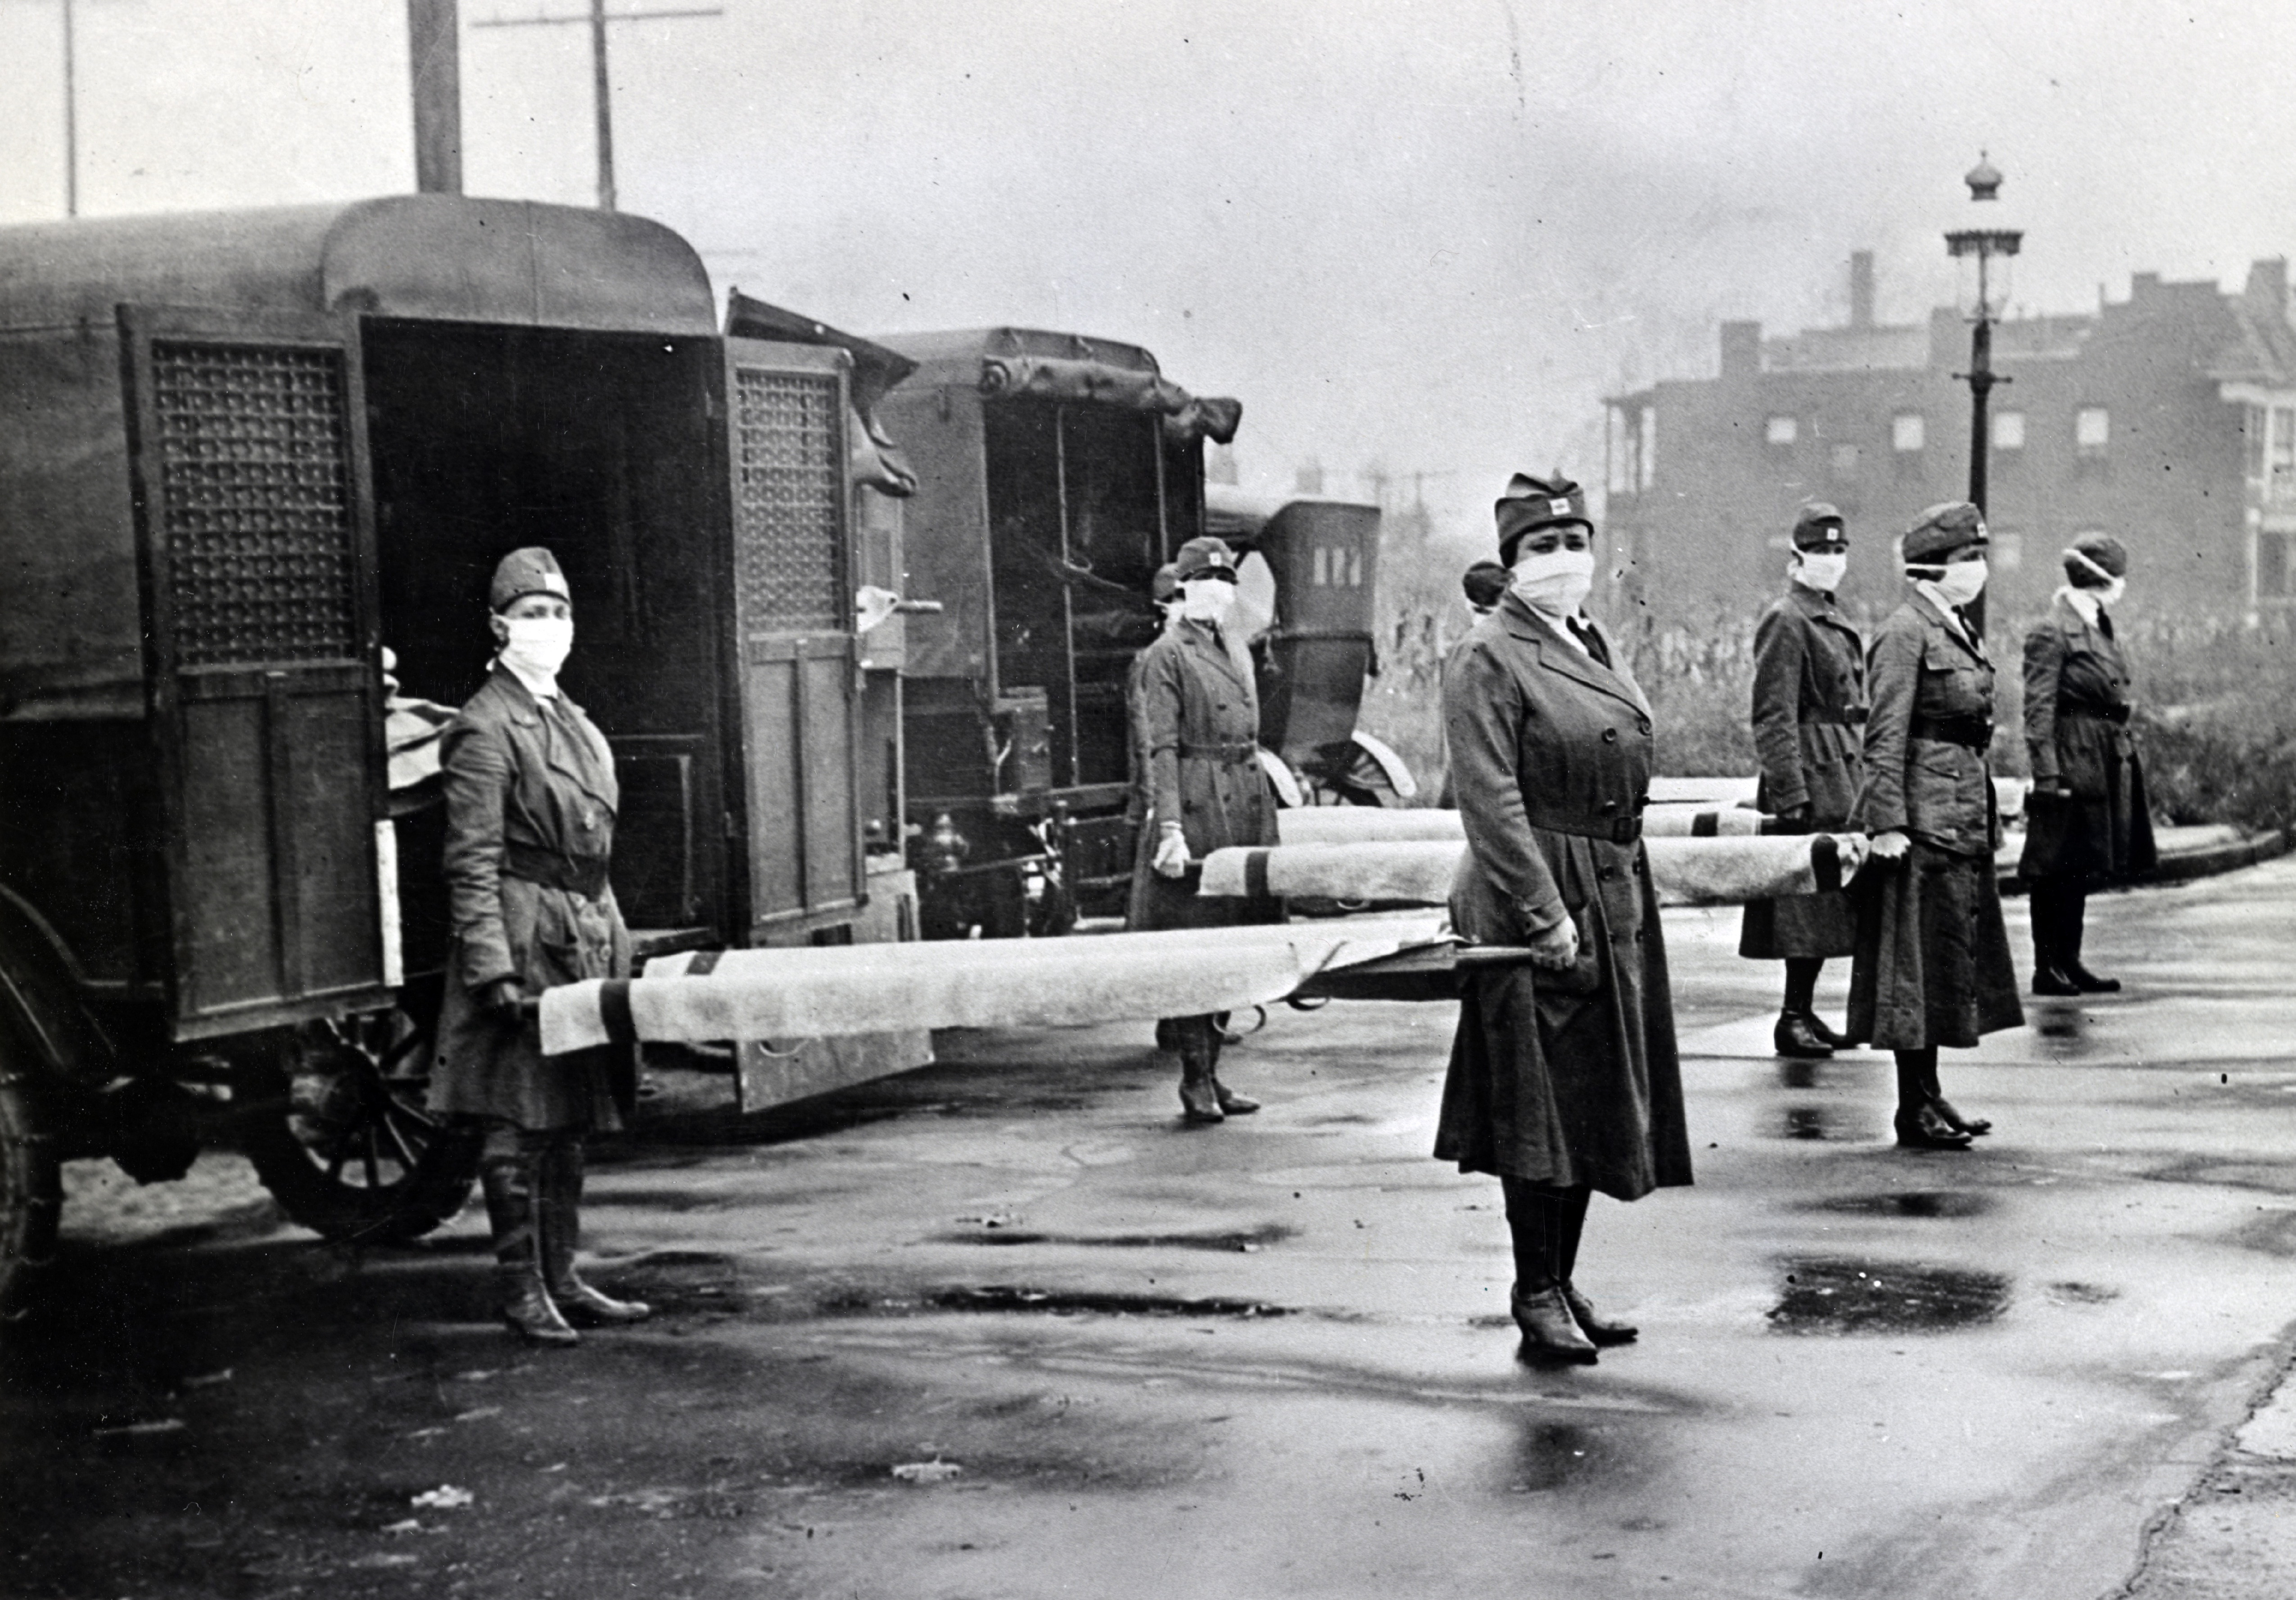 spanish flu pandemic of 1918 One hundred years ago, the virulent spanish flu left 50 to 100 million people dead a pandemic of that magnitude could happen again.